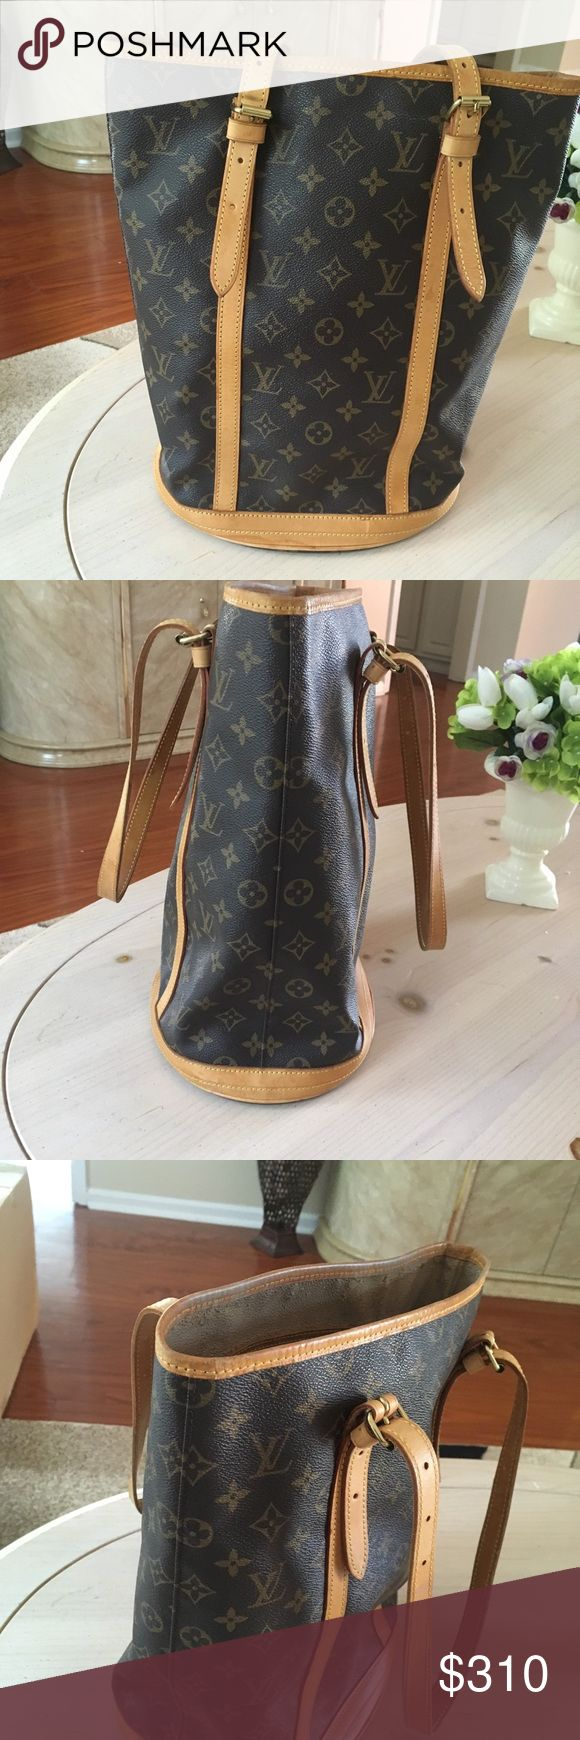 💯% Authentic lv large bucket bag Beautiful bag. Outside great condition. Inside starting to peel and sticky, not too bad. Normal wear, scratches, rubbing. Measures approximately 13.5 x 10.5 x 8 inch. Made in France. Louis Vuitton Bags Shoulder Bags